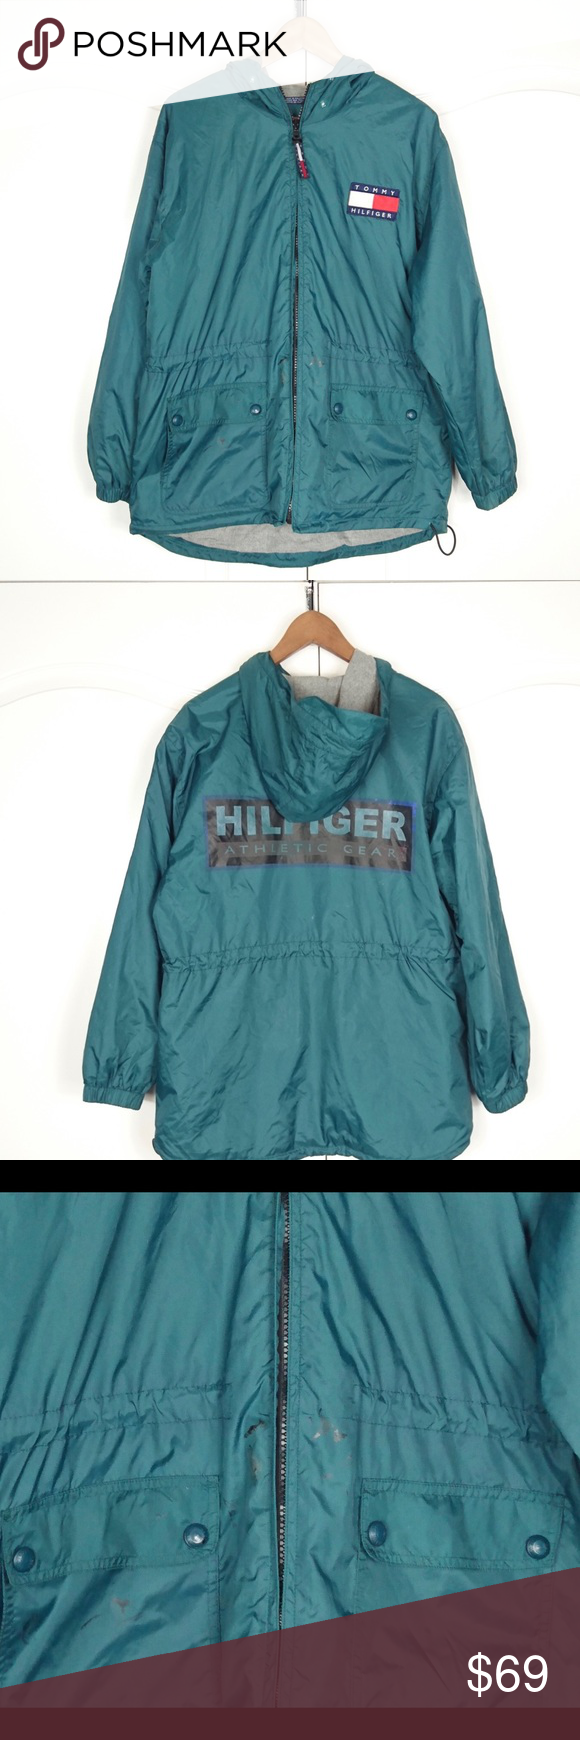 Tommy hilfiger colorblock vintage windbreaker xl tommy hilfiger